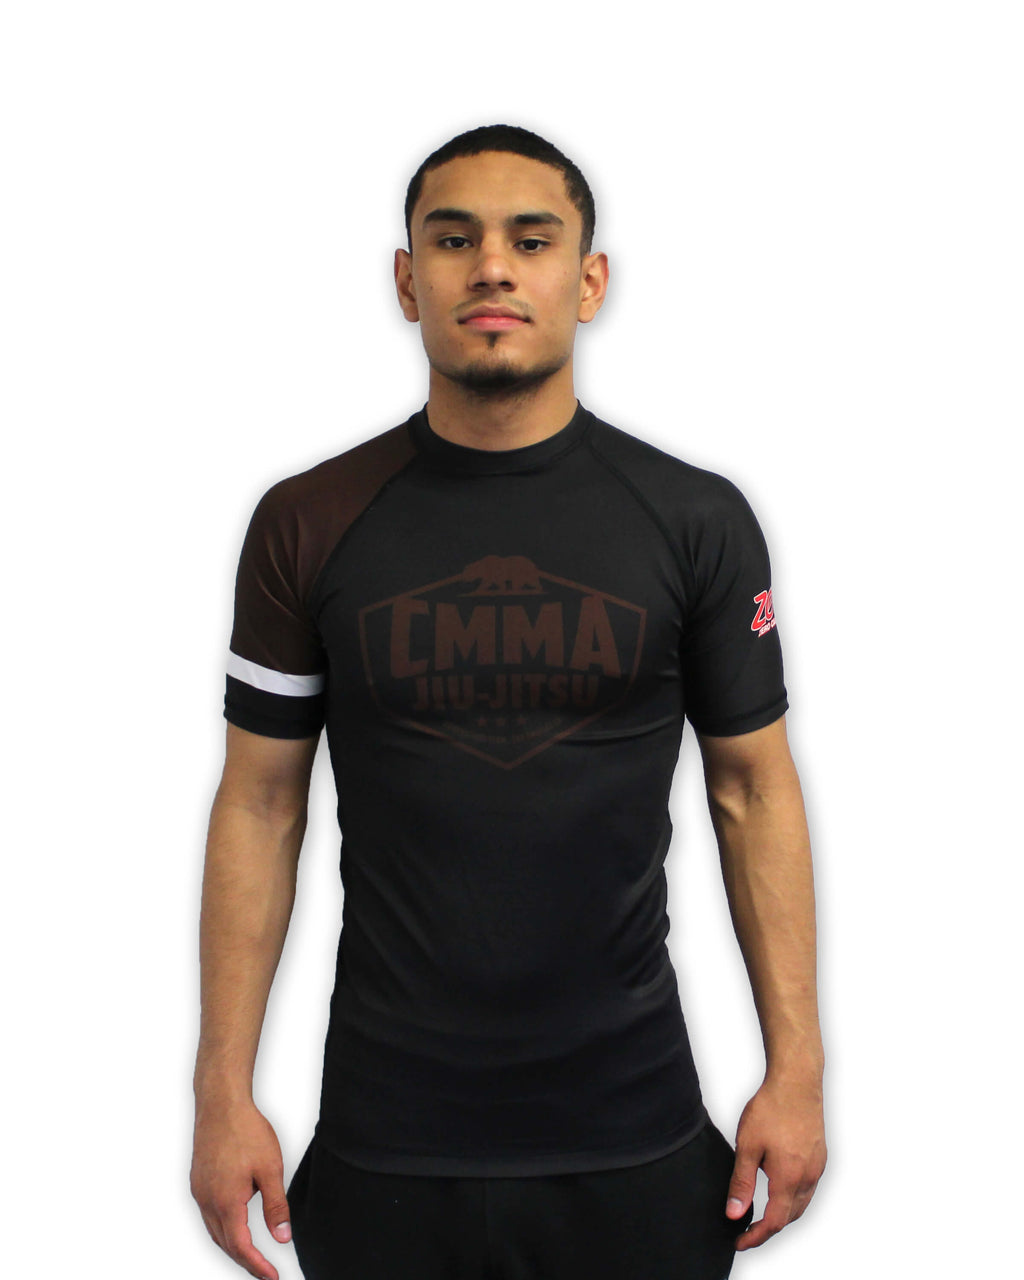 CMMA Rash Guard Short Sleeve Brown